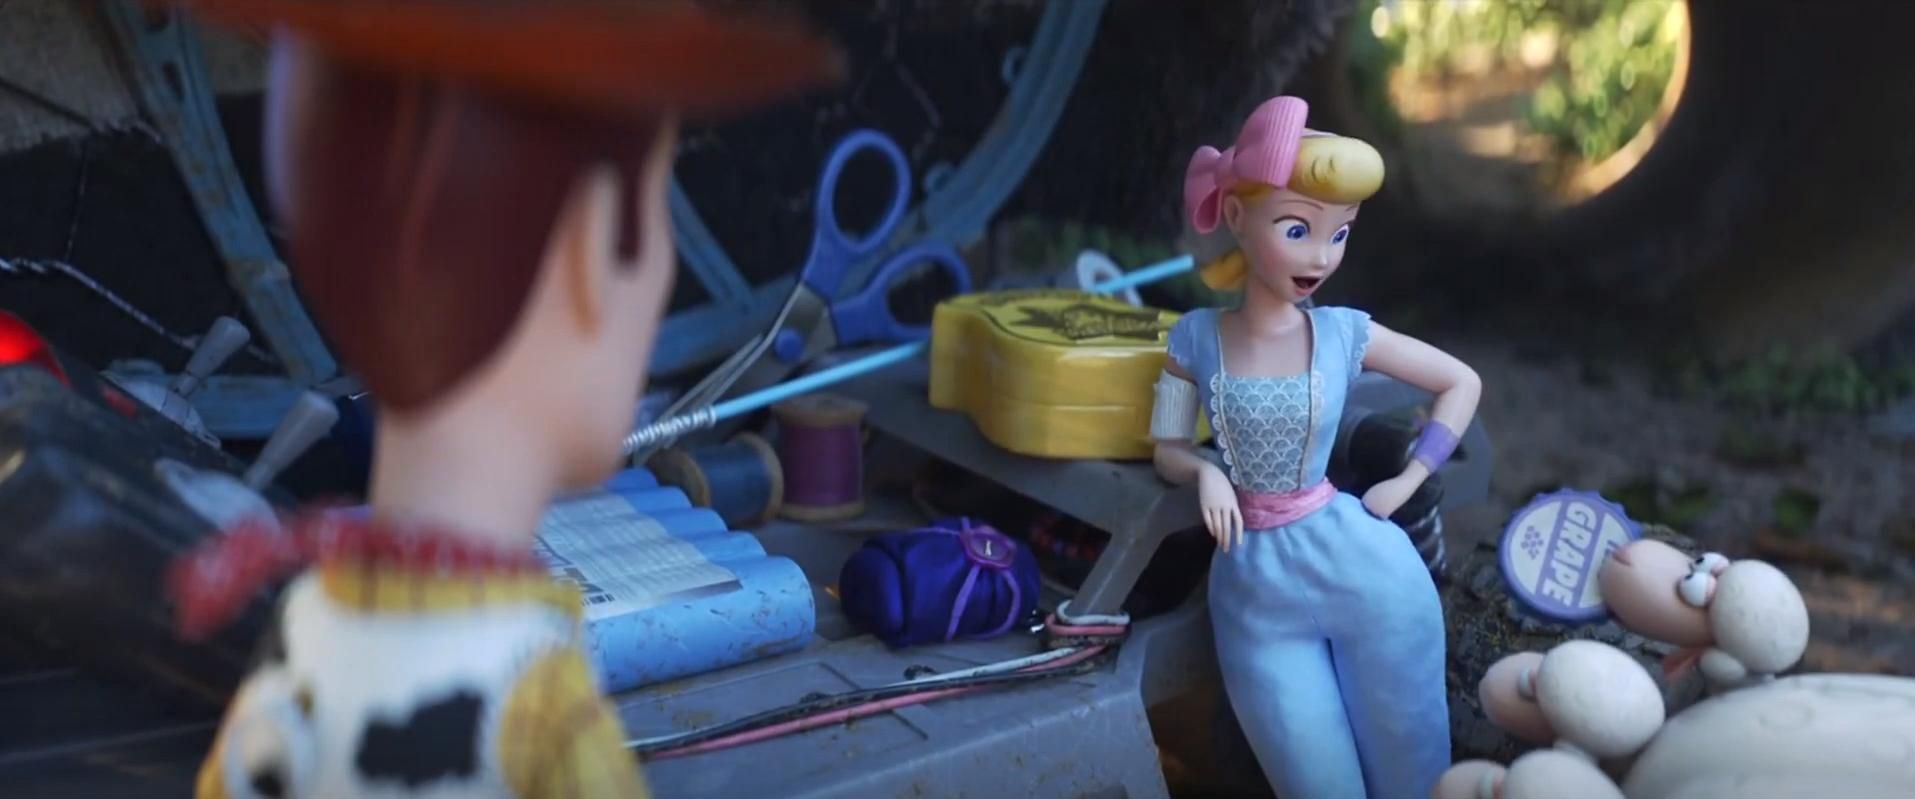 In Toy Story 4 2019 Bo Peep S Sheep Offer Her A Grape Soda Bottle Cap Introduced As A Pin In Up Toy Story Bo Peep Toy Story Bo Peep